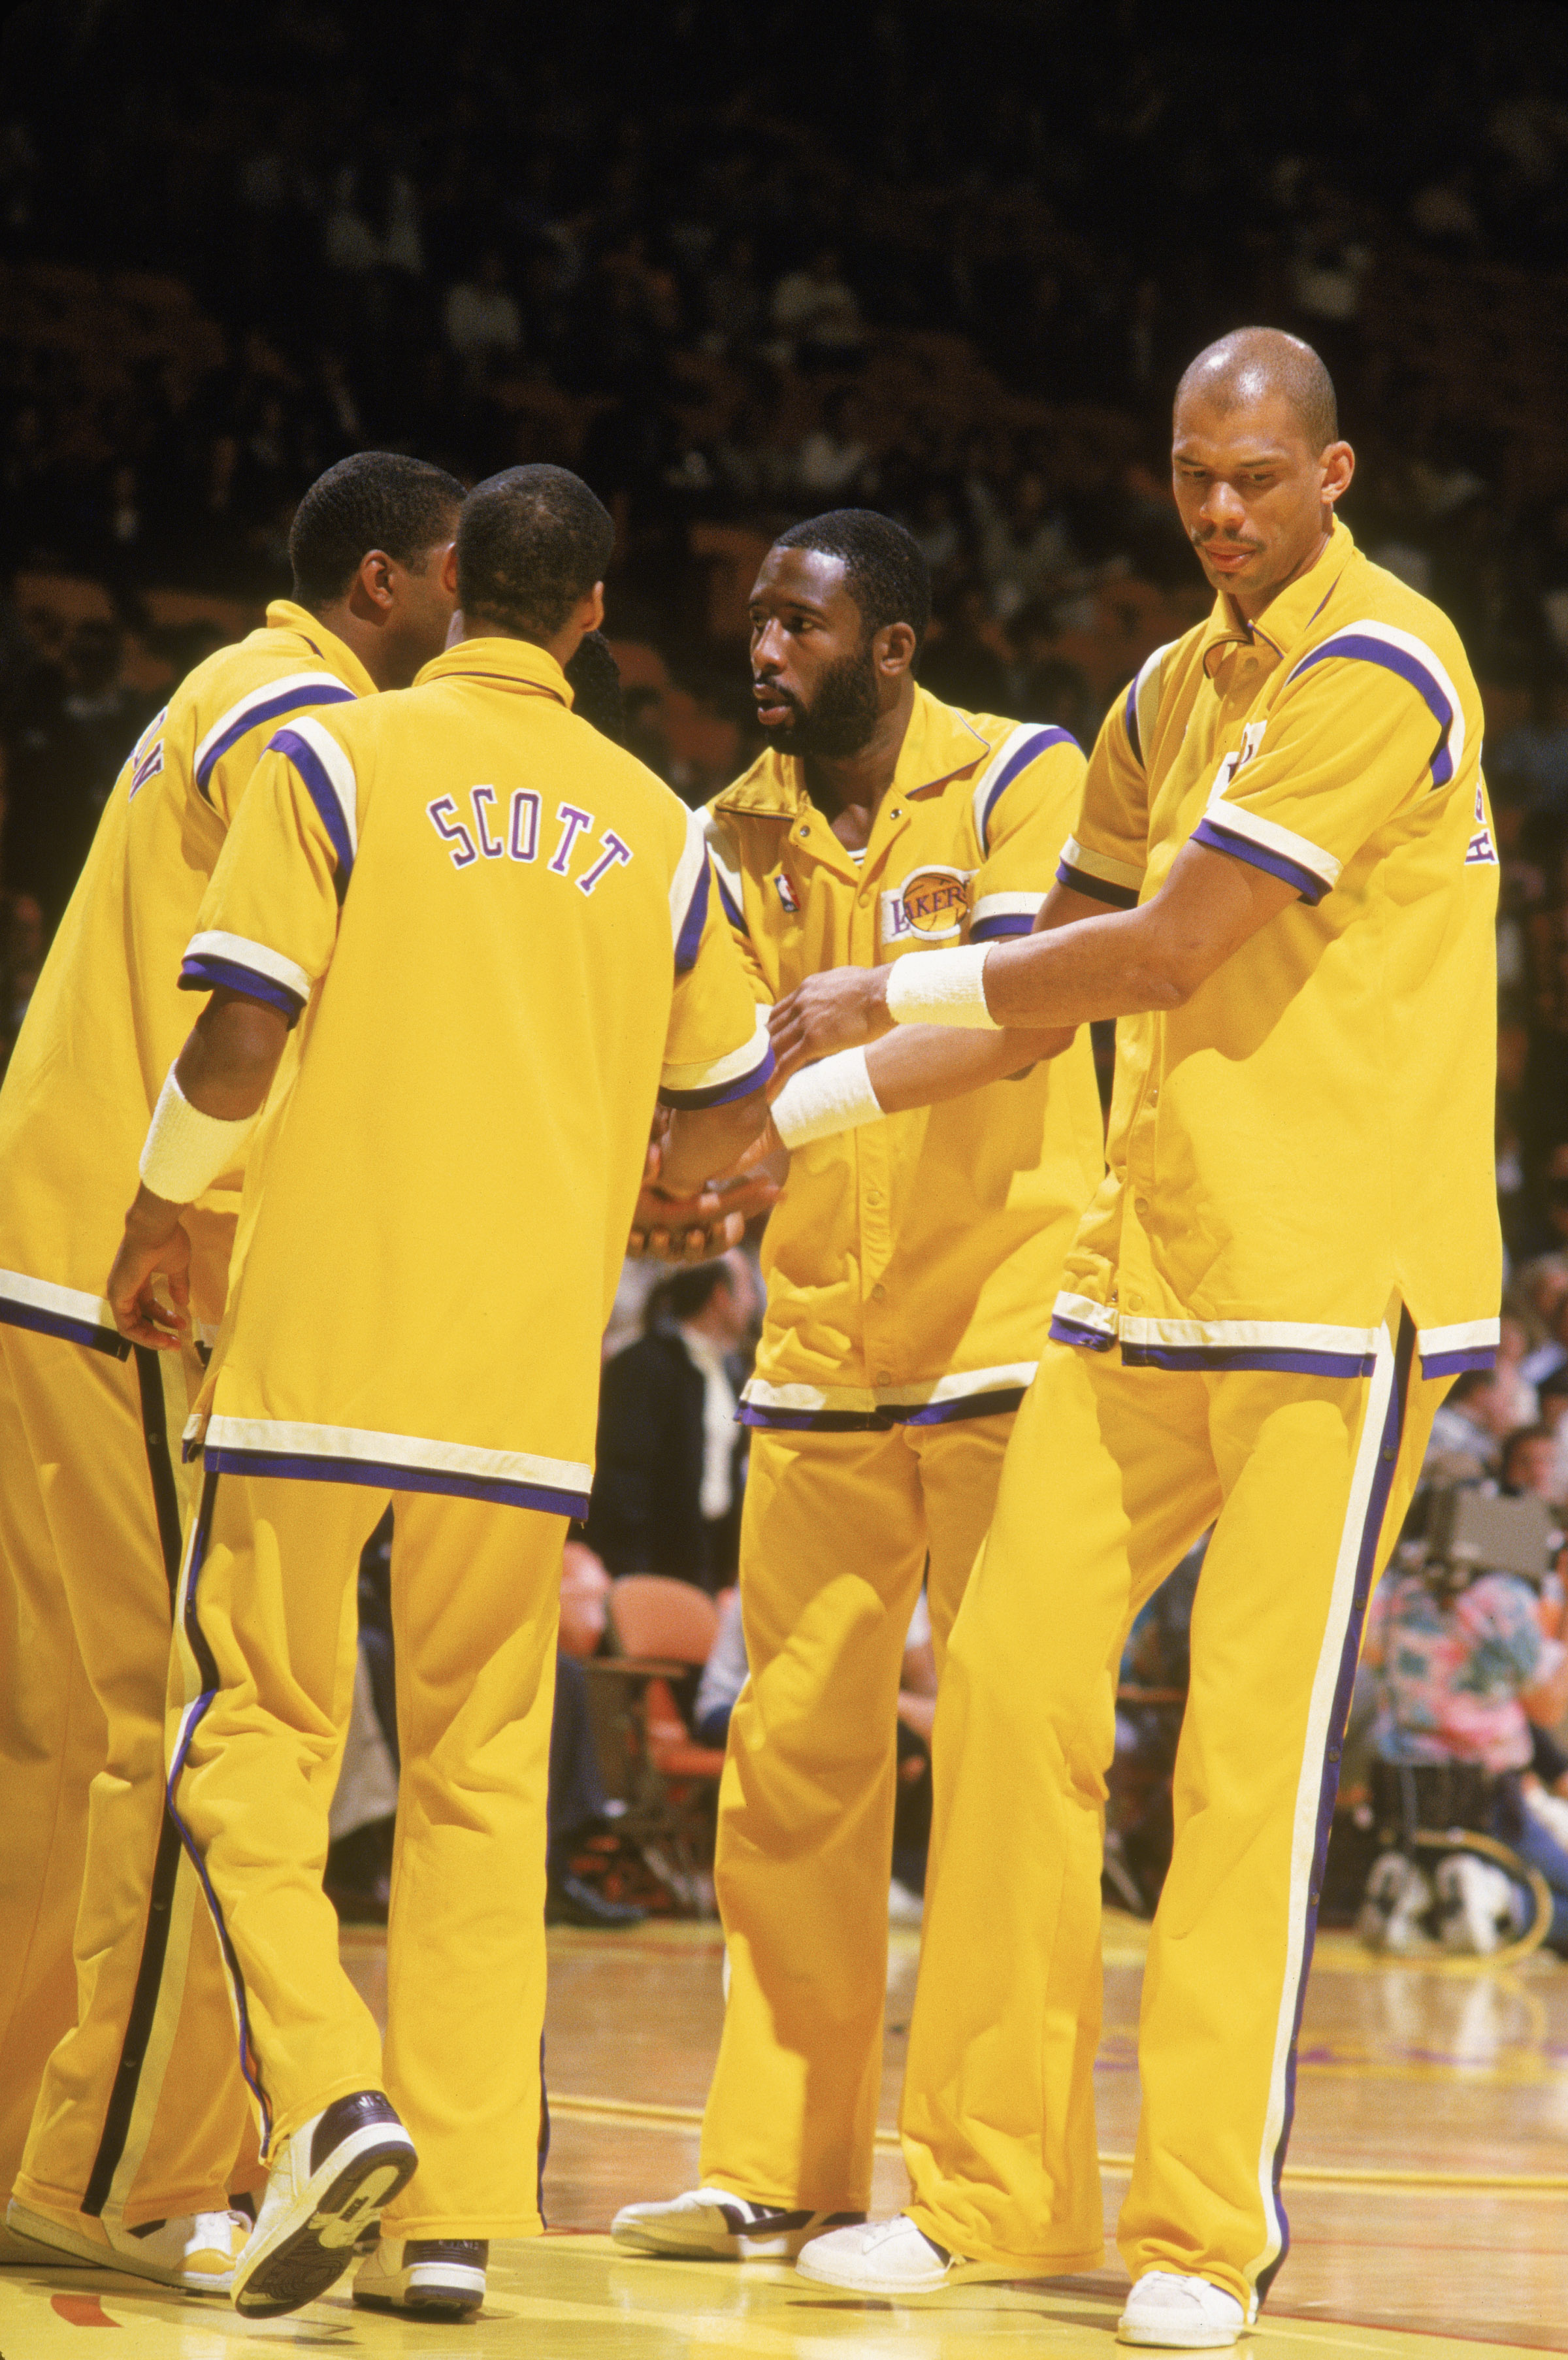 James Western Star >> NBA Power Rankings: Counting Down the Top 20 Starting Fives in NBA History | Bleacher Report ...